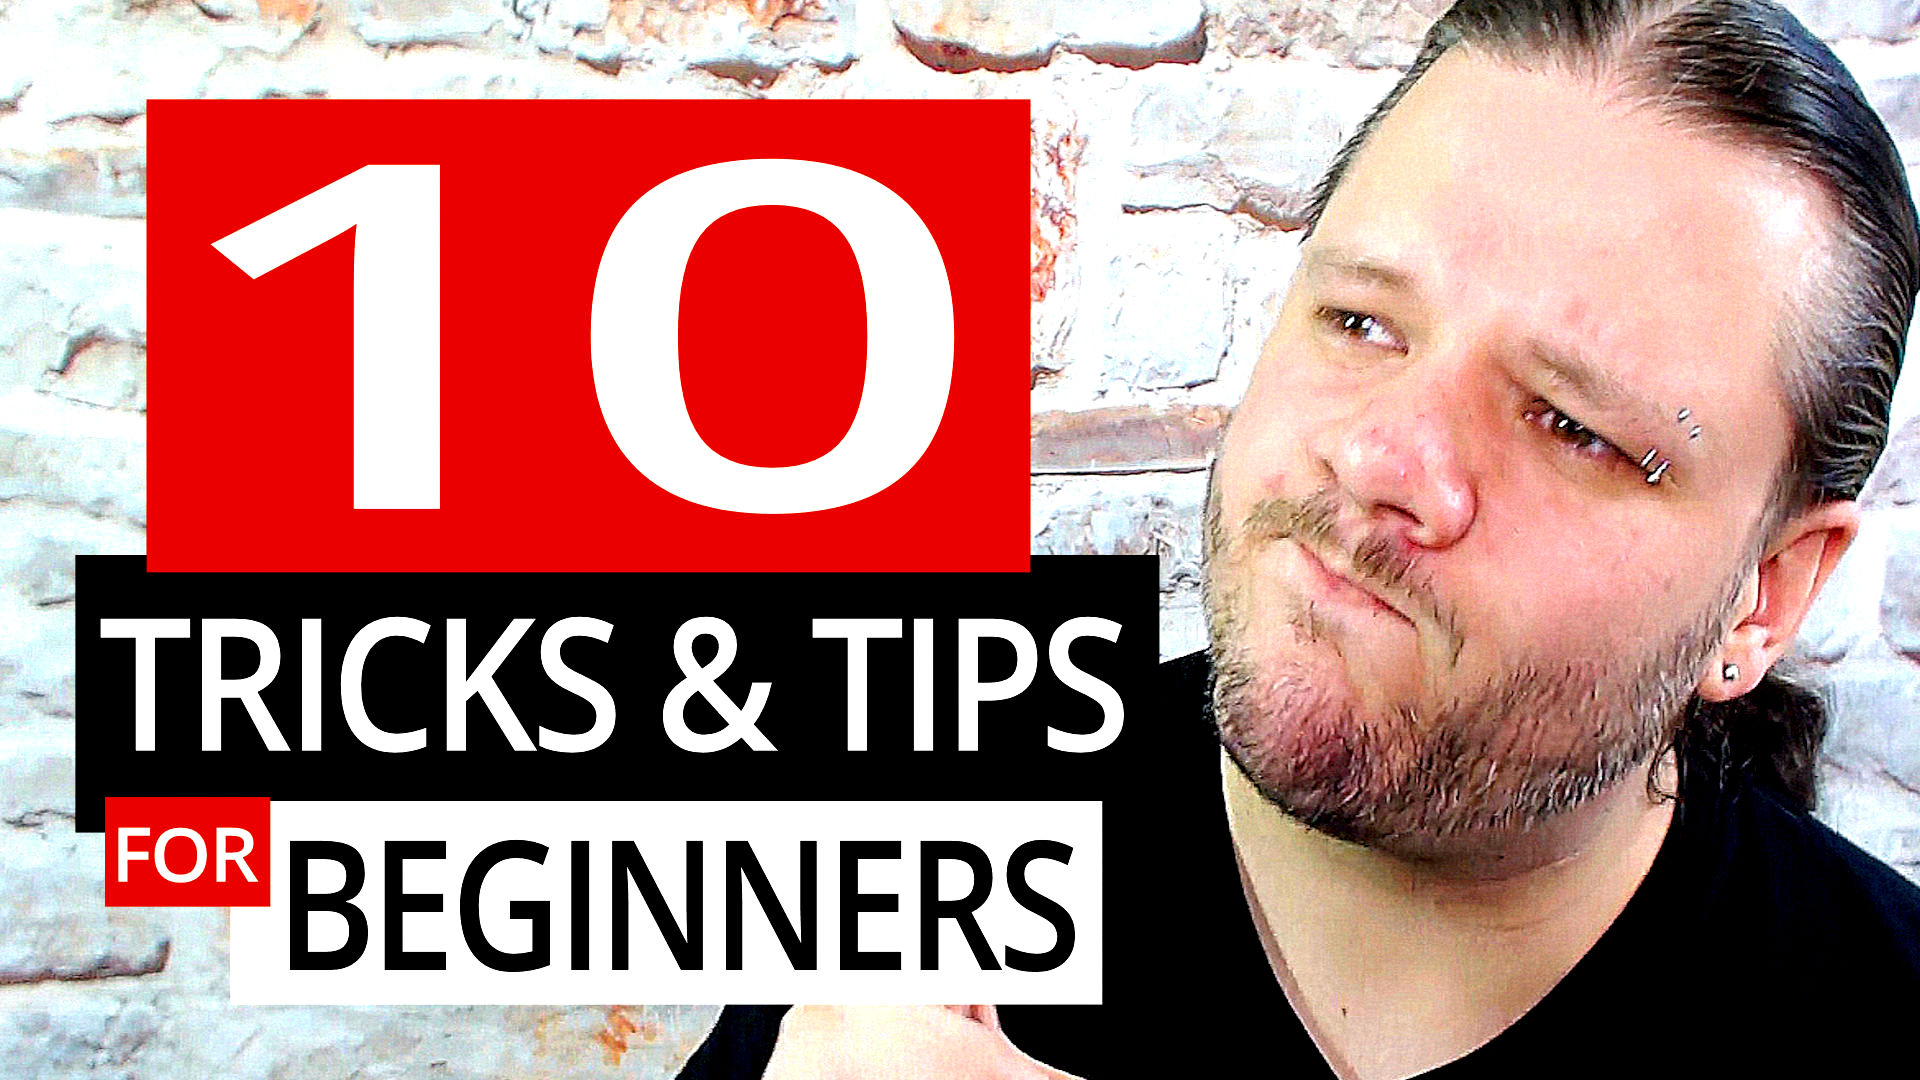 alan spicer,YouTube Hacks For Beginners,youtube hacks beginners,10 youtube tips for beginners,youtube tips for beginners 2017,youtube tips 2017,youtube for dummies,youtube tutorial,youtube for beginners,tips,youtube hacks,new youtuber tips,alanspicer,10 tips for youtube beginners,youtube 101,youtube tips,yt tips,tips for new youtubers,youtuber tips,10 youtube hacks,tips for youtubers,10 youtube tips,youtube tips for rookies,youtube tips for beginners